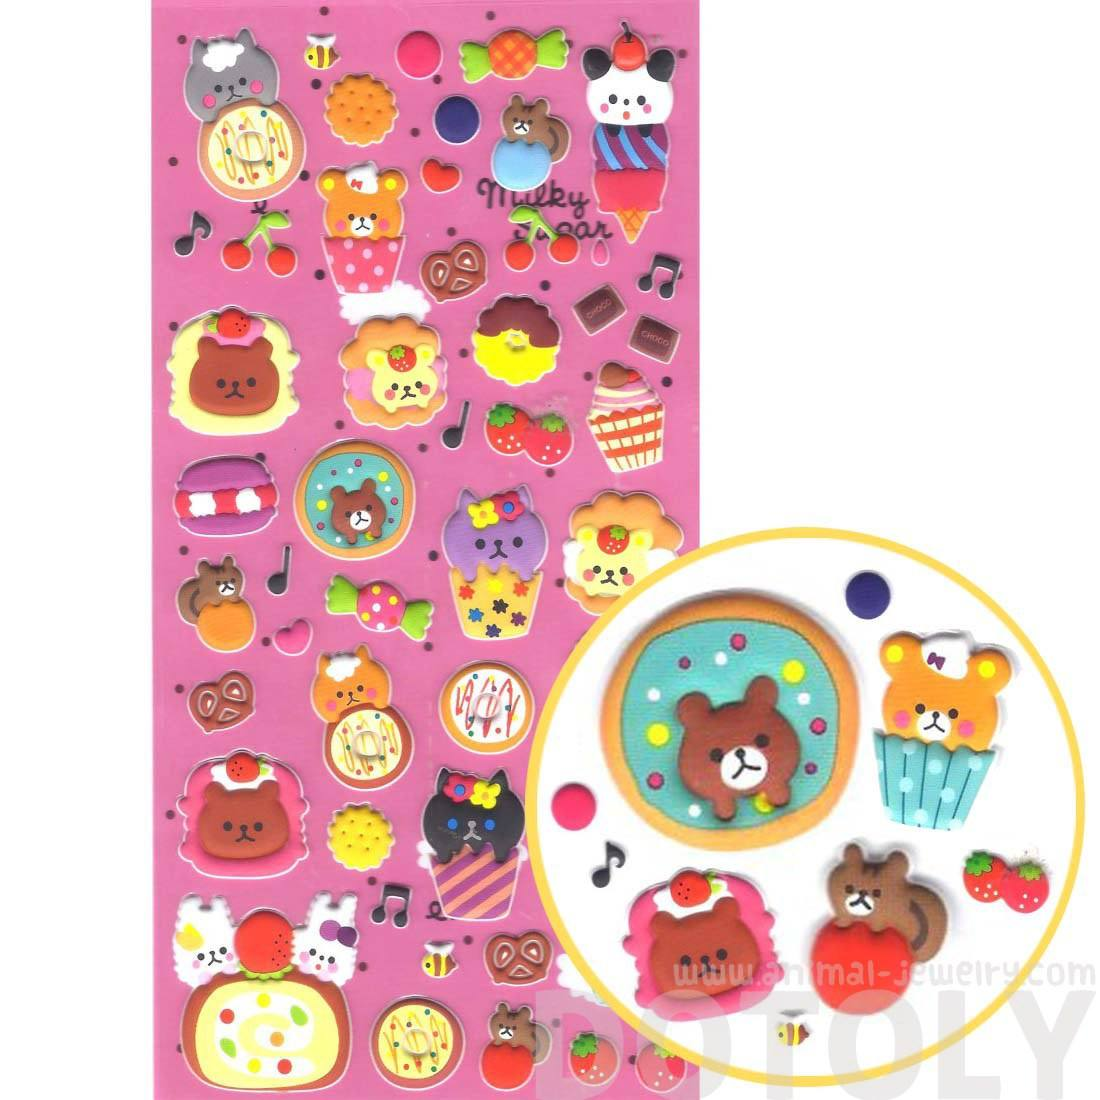 Super Cute Teddy Bears and Donuts Cakes Desserts Shaped Puffy Stickers